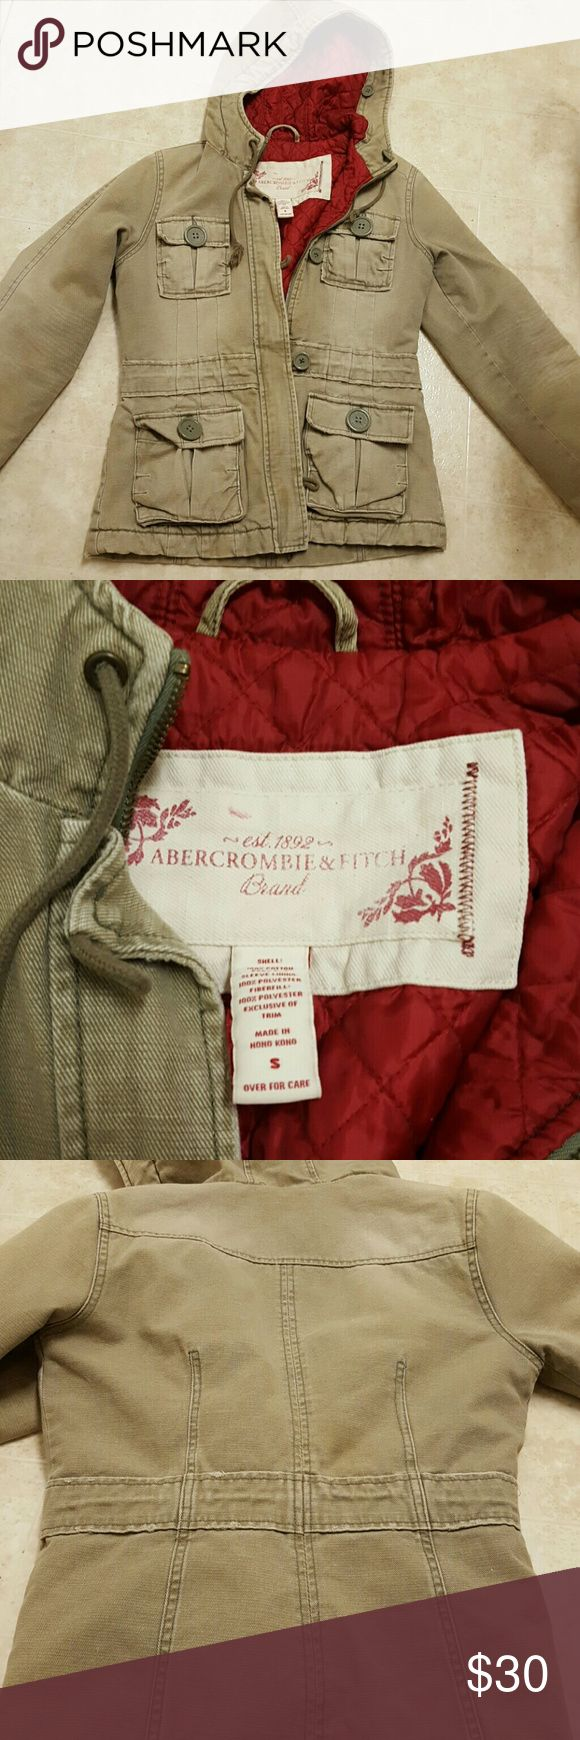 Abercrombie & Fitch winter jacket Abercrombie & Fitch winter jacket Abercrombie & Fitch Jackets & Coats